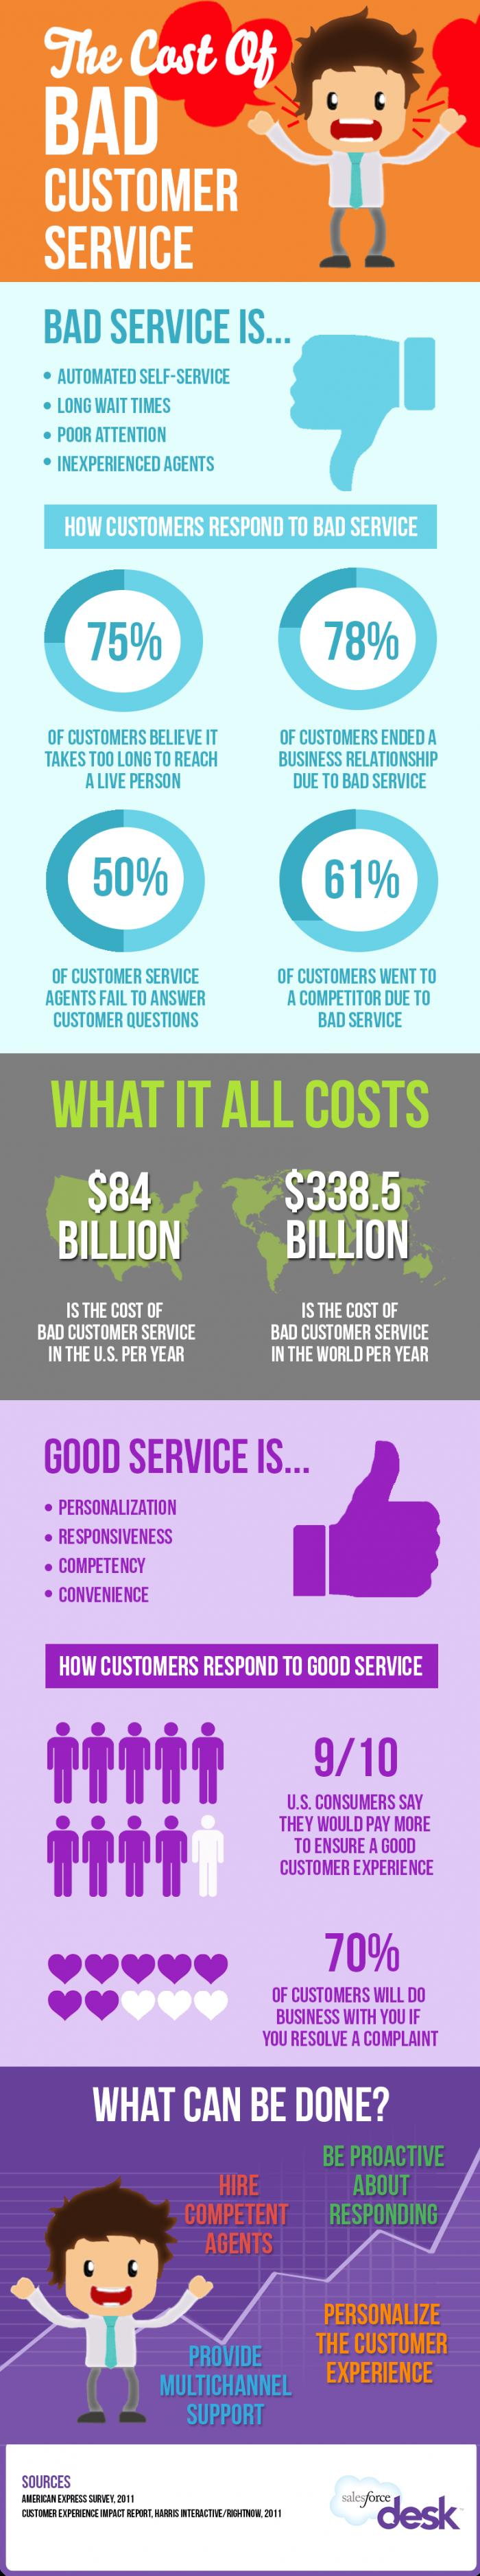 The Cost Of Bad Customer Service